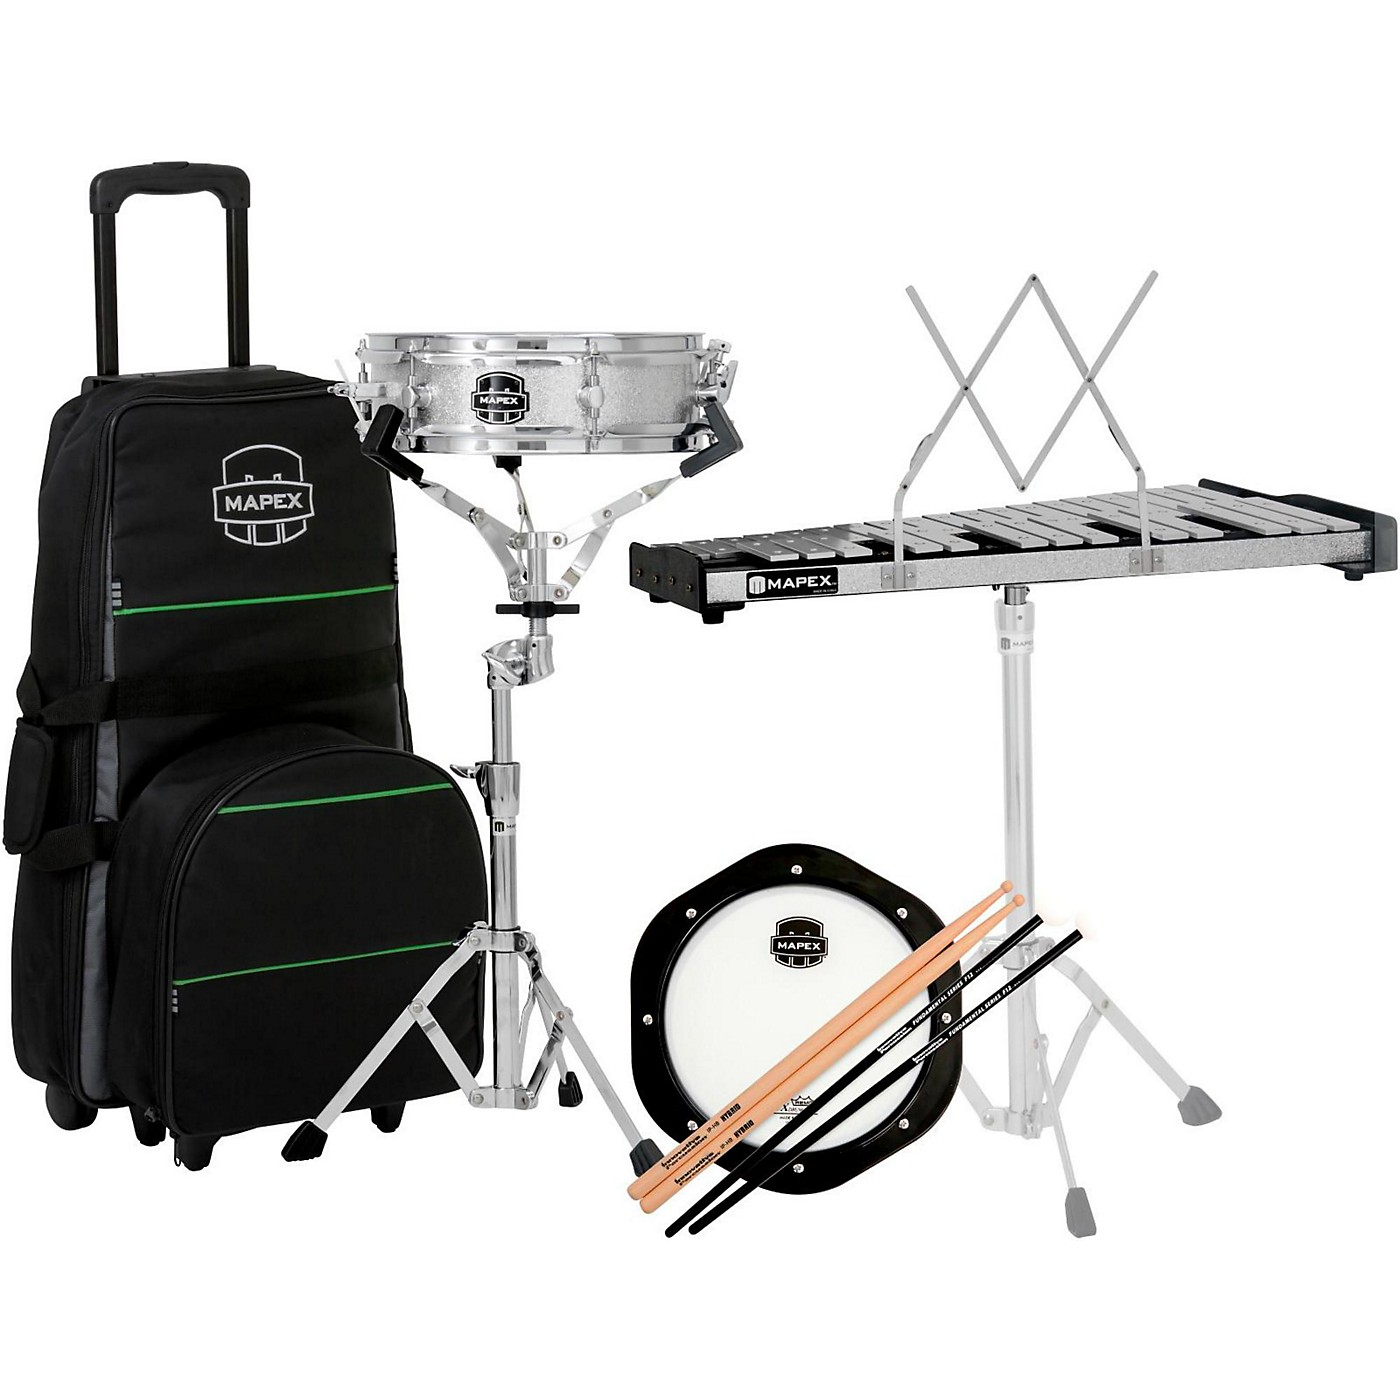 Mapex Snare Drum/Bell Percussion Kit with Rolling Bag thumbnail